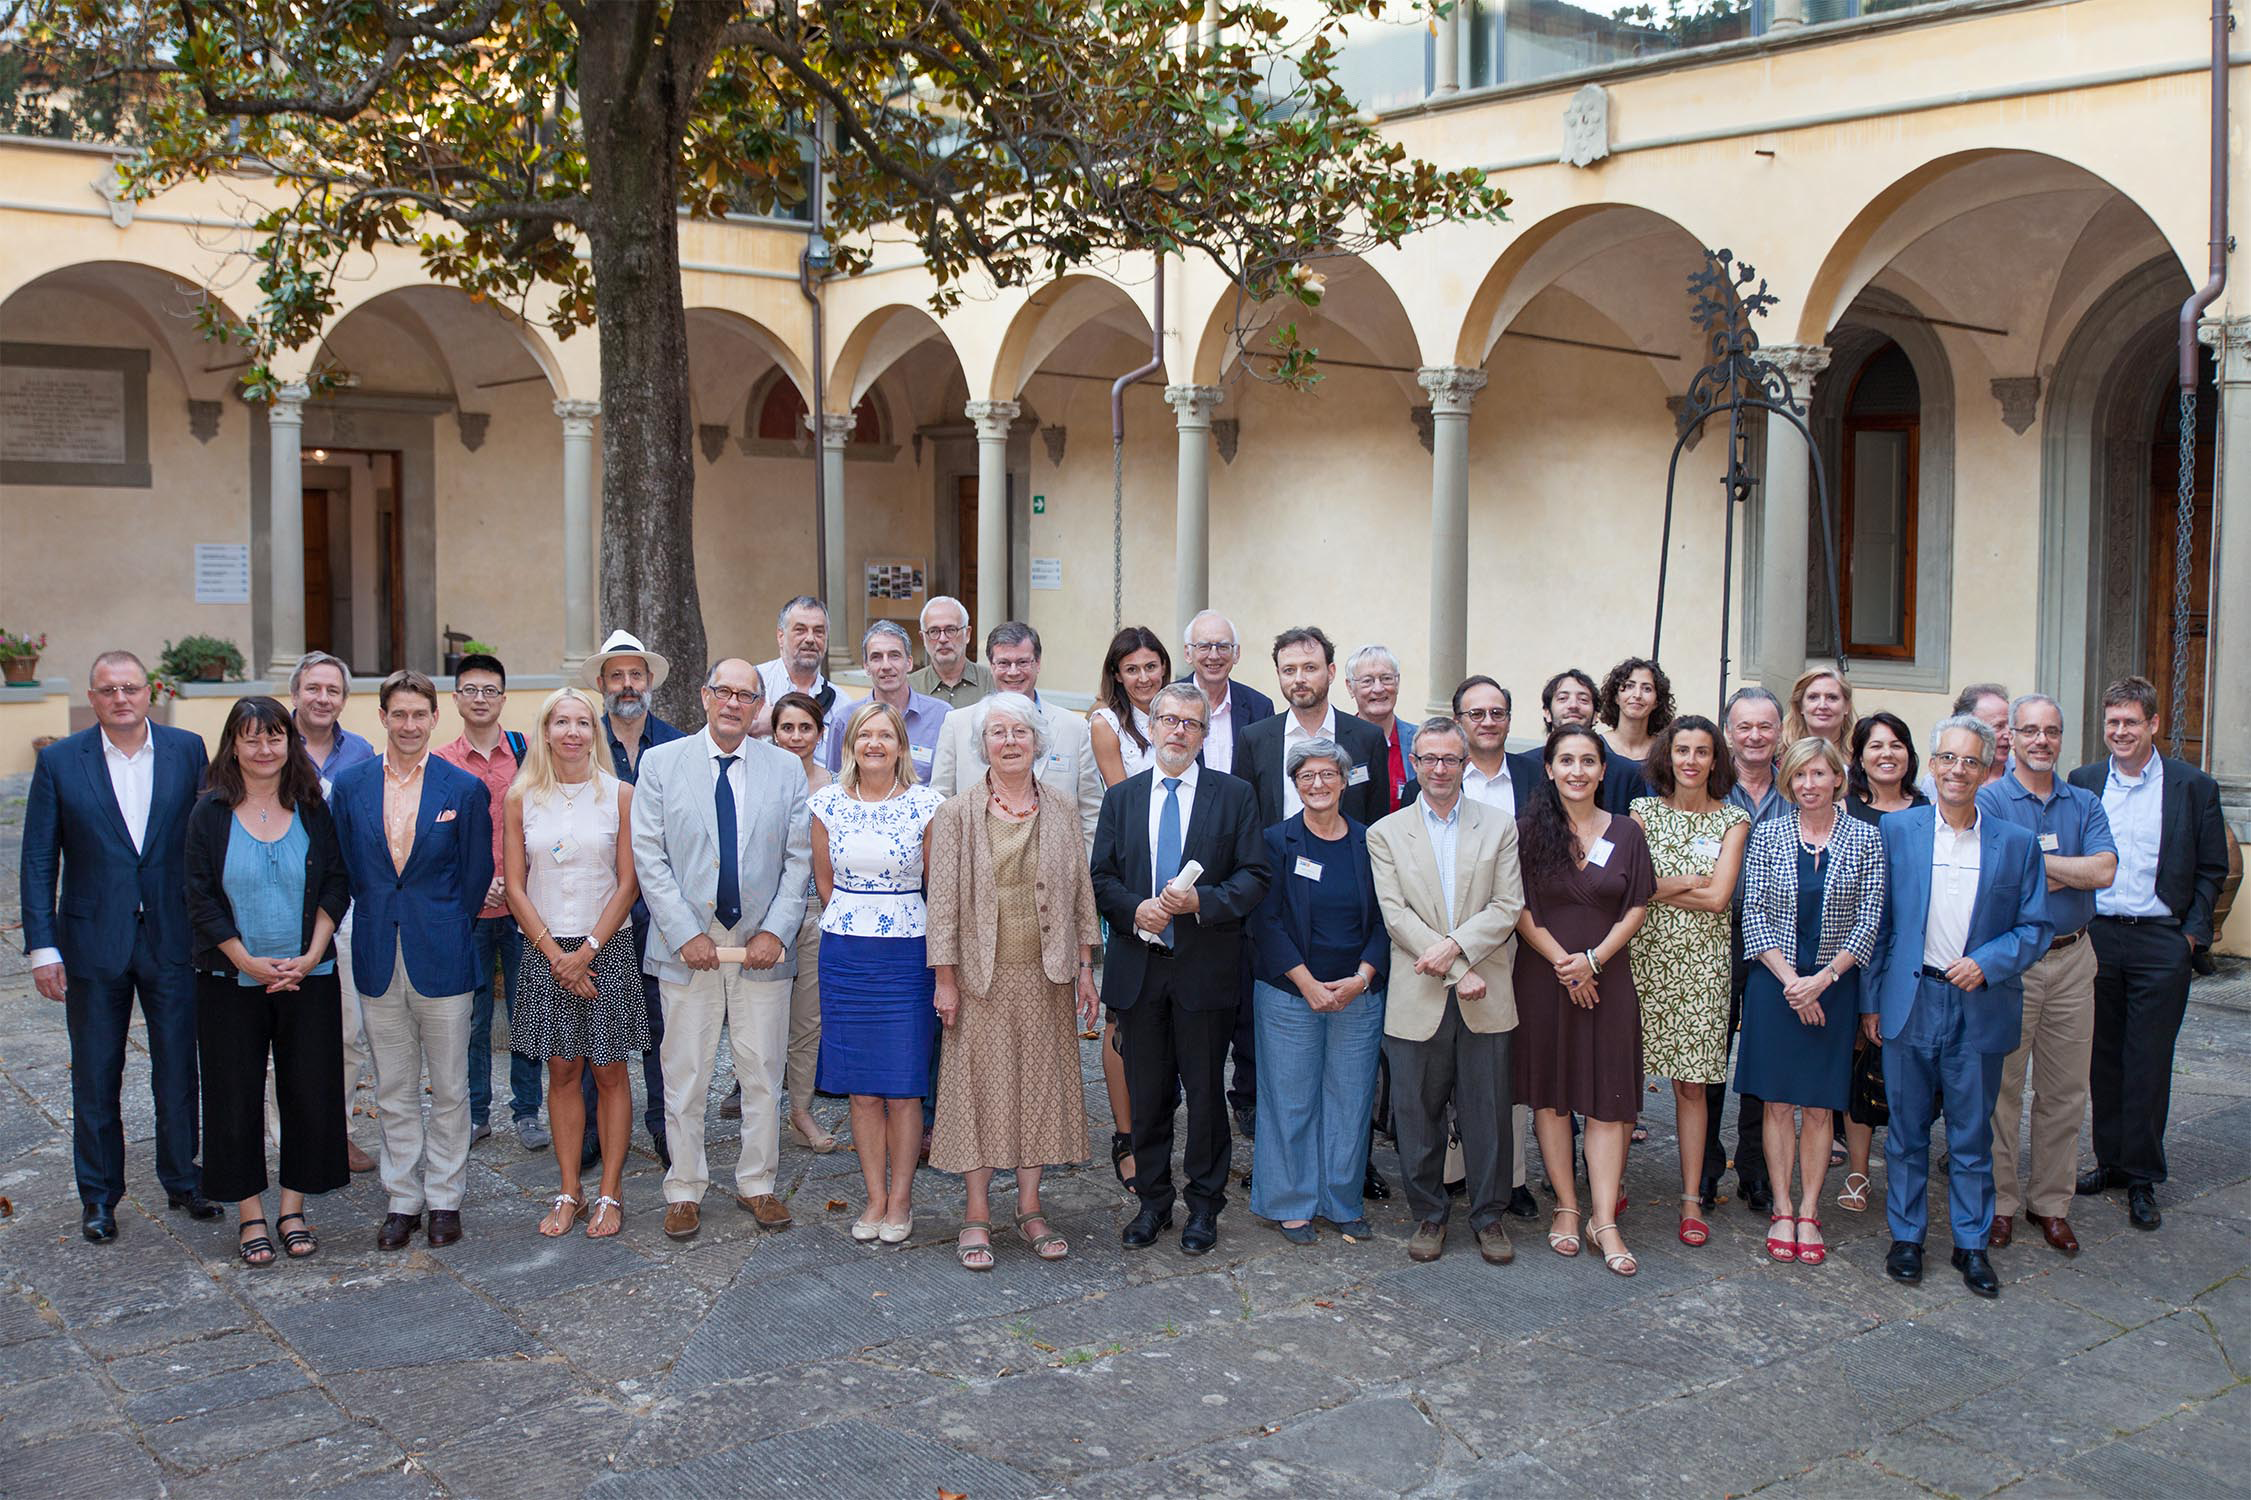 Jean Monnet Fellows gathered at the European University Institute for the 25th anniversary conference on 22 and 23 June 2017